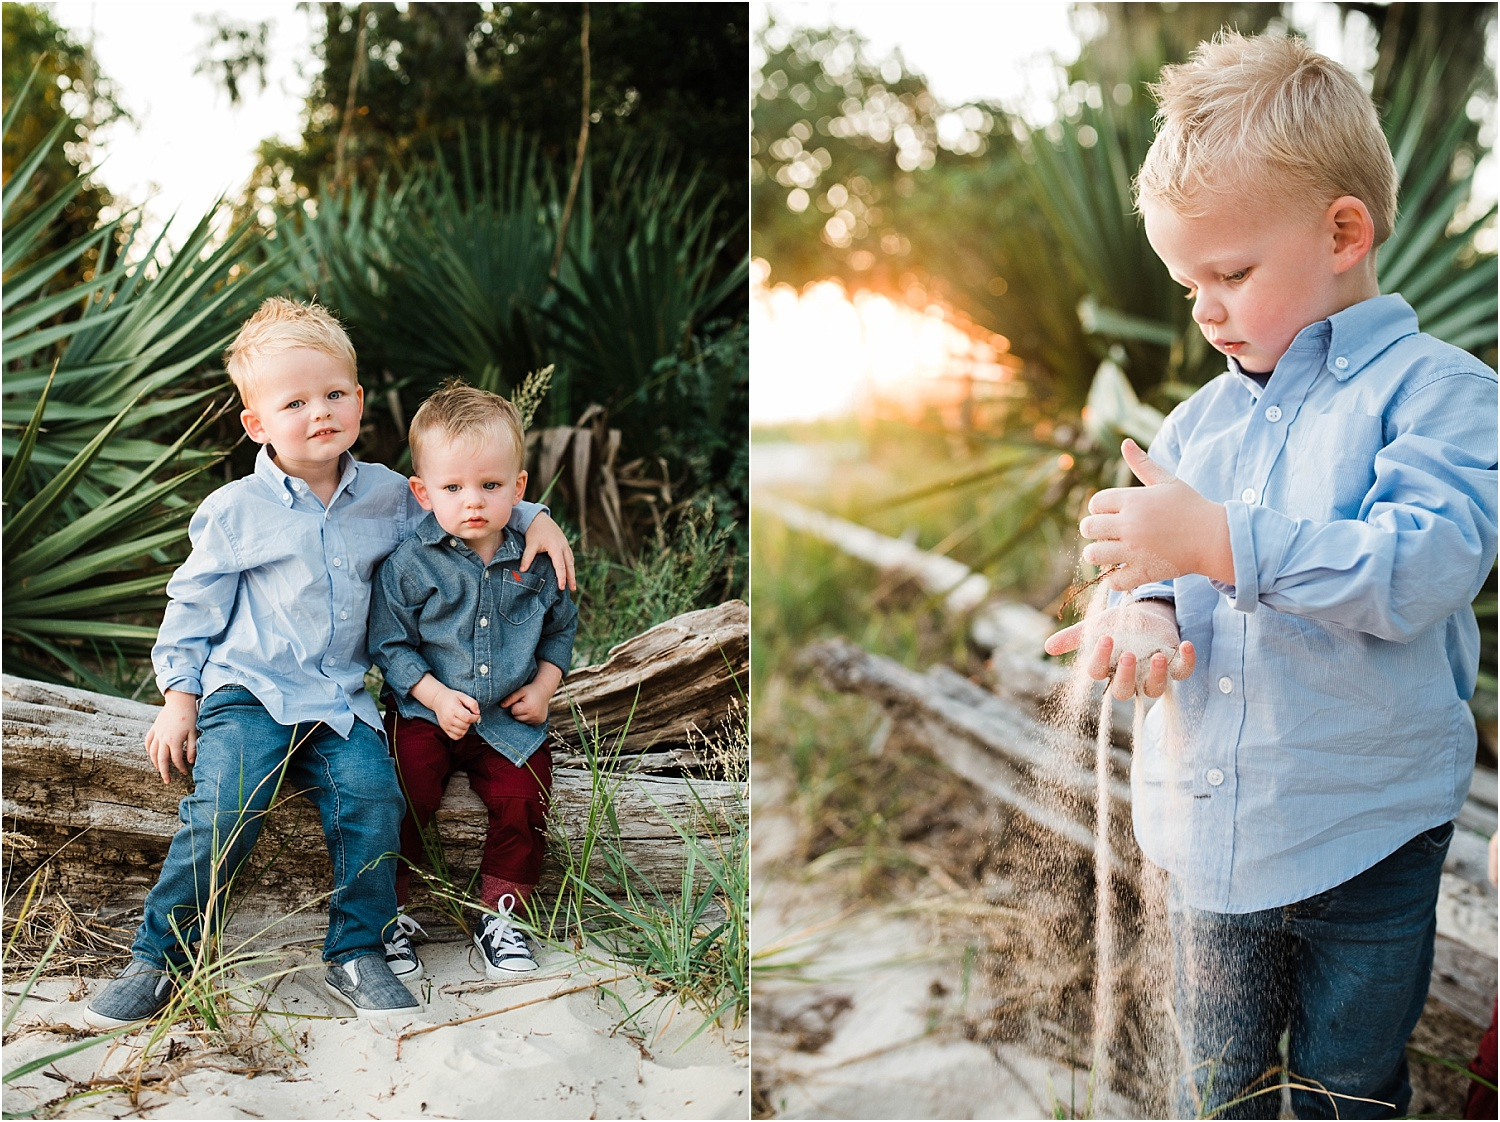 Smalley Family Fall 2019-Fountainbleau-State-Park-Family-Photos_Gabby Chapin Photography_0111_BLOG.jpg